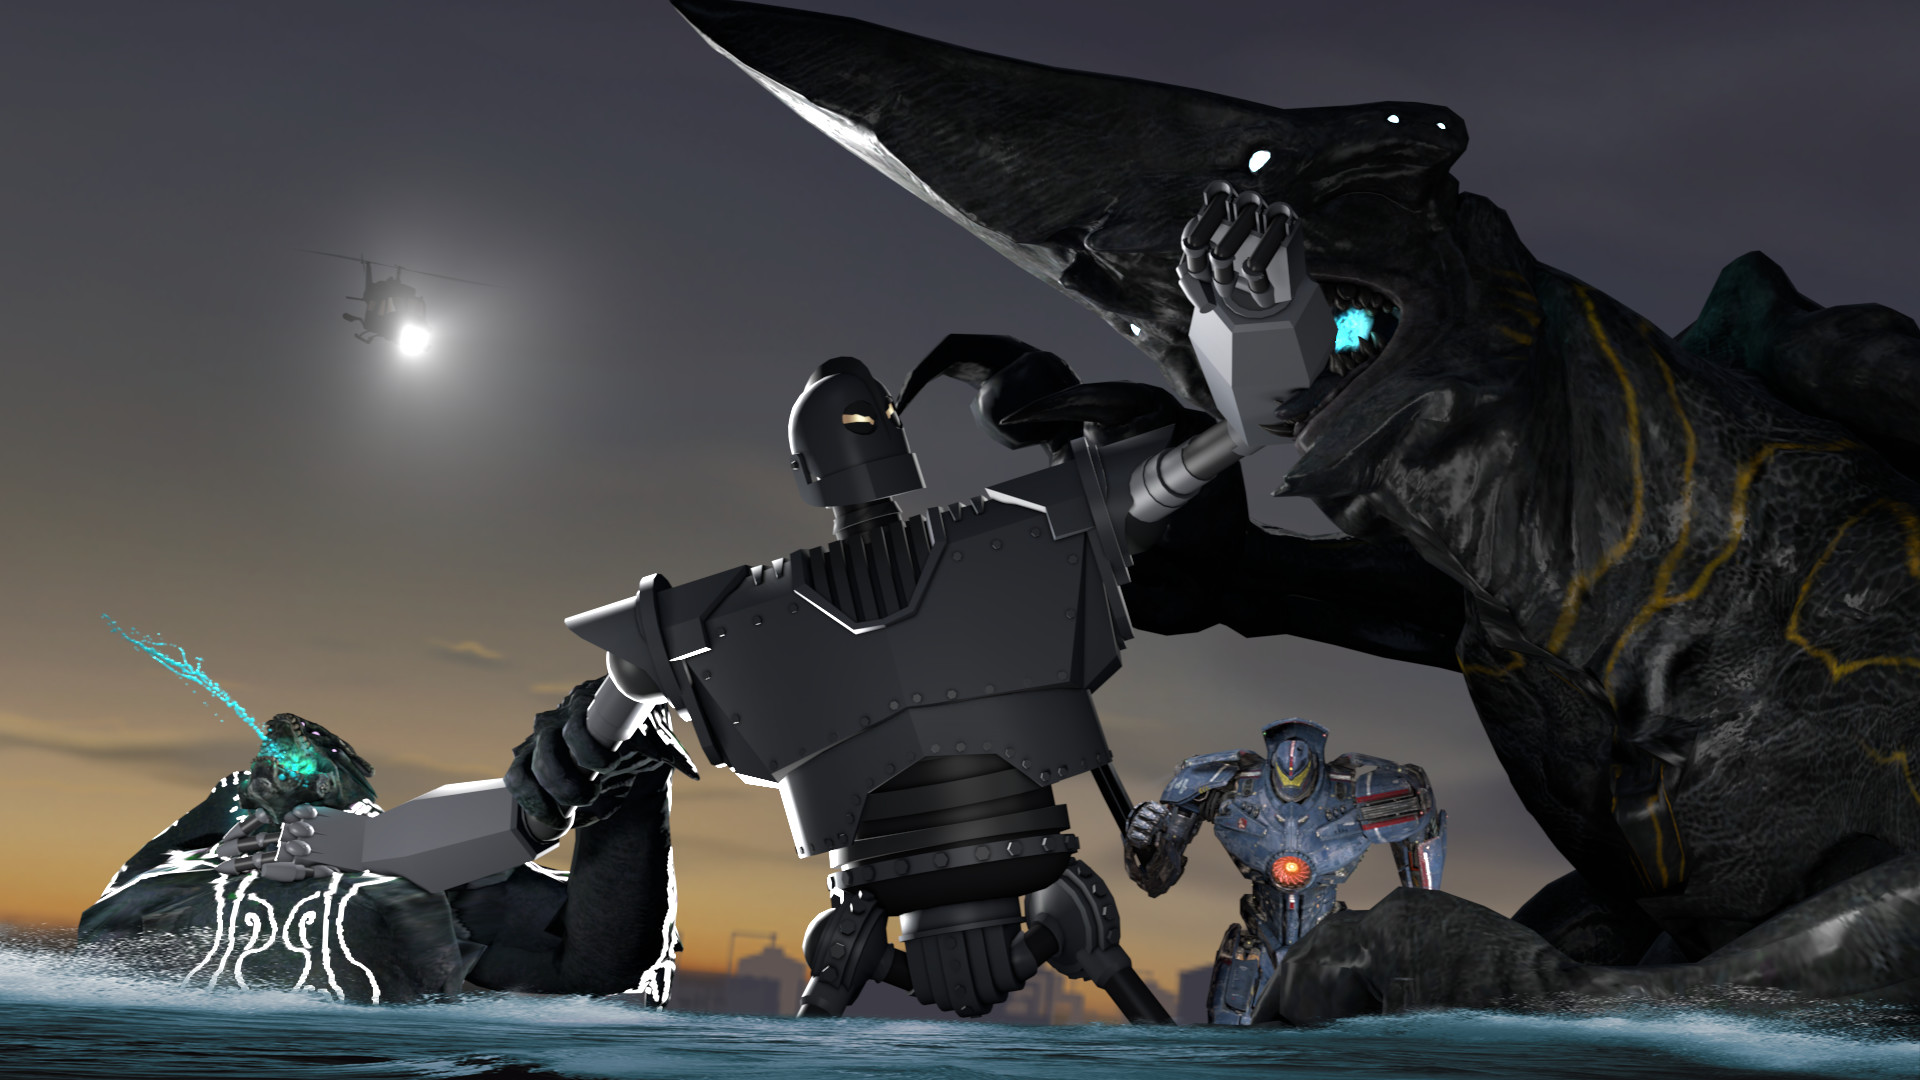 Pacific Rim Kaiju by MaddogSamureye [SFM] The Iron Giant v. Pacific Rim  Kaiju by MaddogSamureye